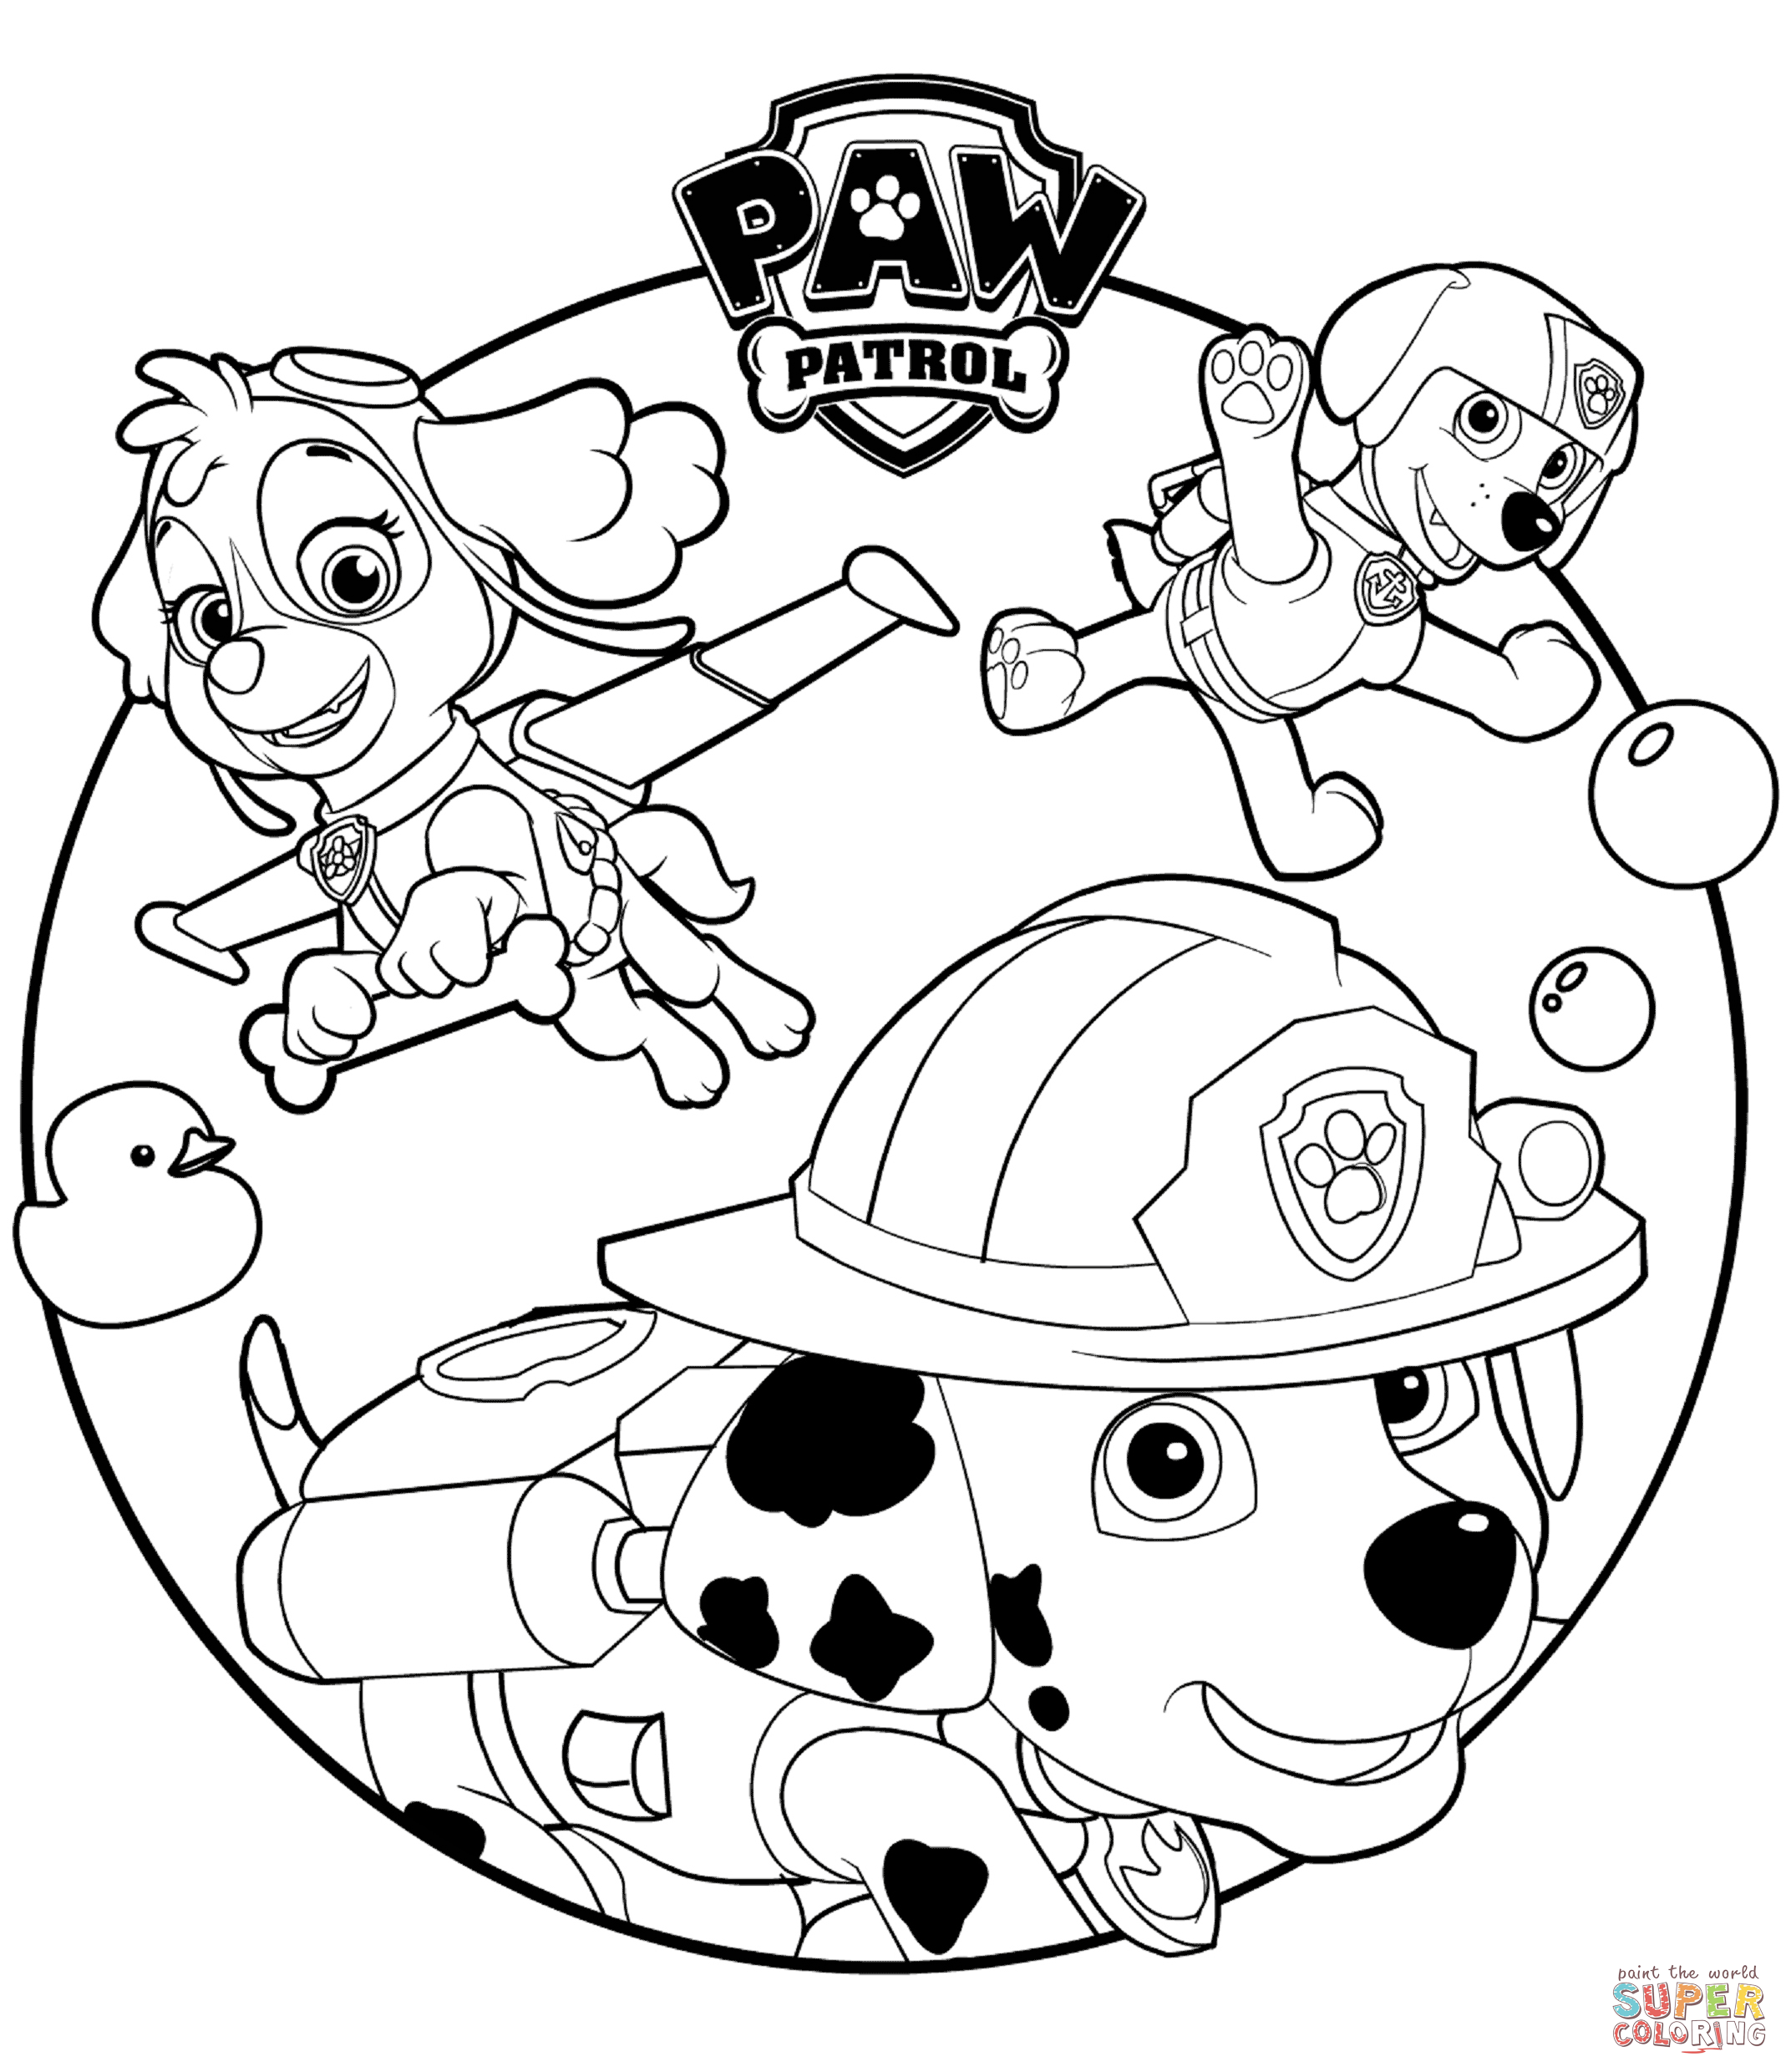 paw patrol coloring page paw patrol coloring activity book free to use paw coloring page patrol